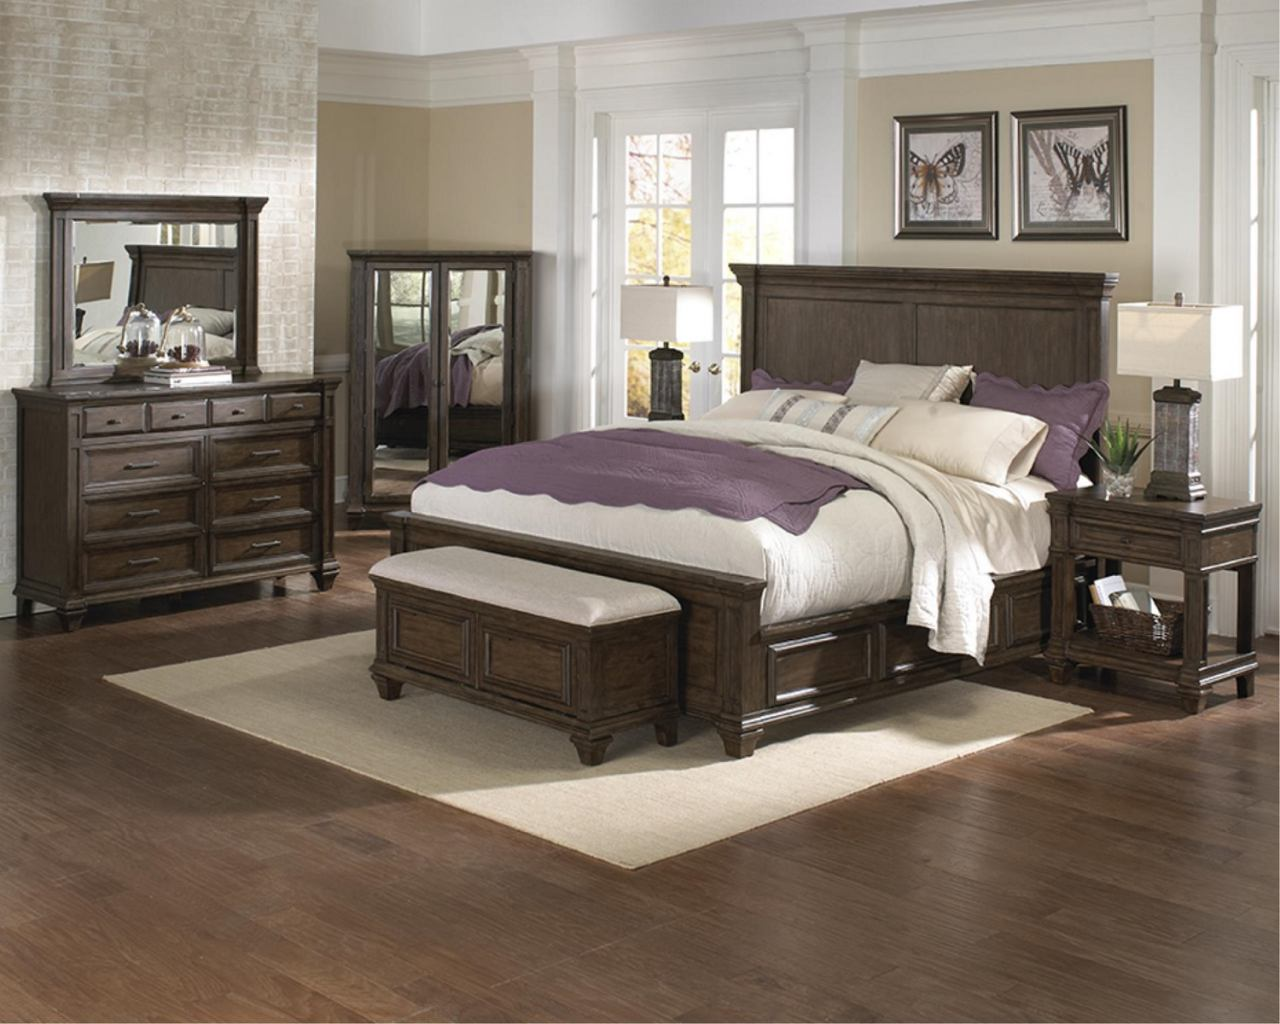 A-America Furniture Gallatin 4-Piece Panel with Storage Bedroom Set in Timeworn Mahogany